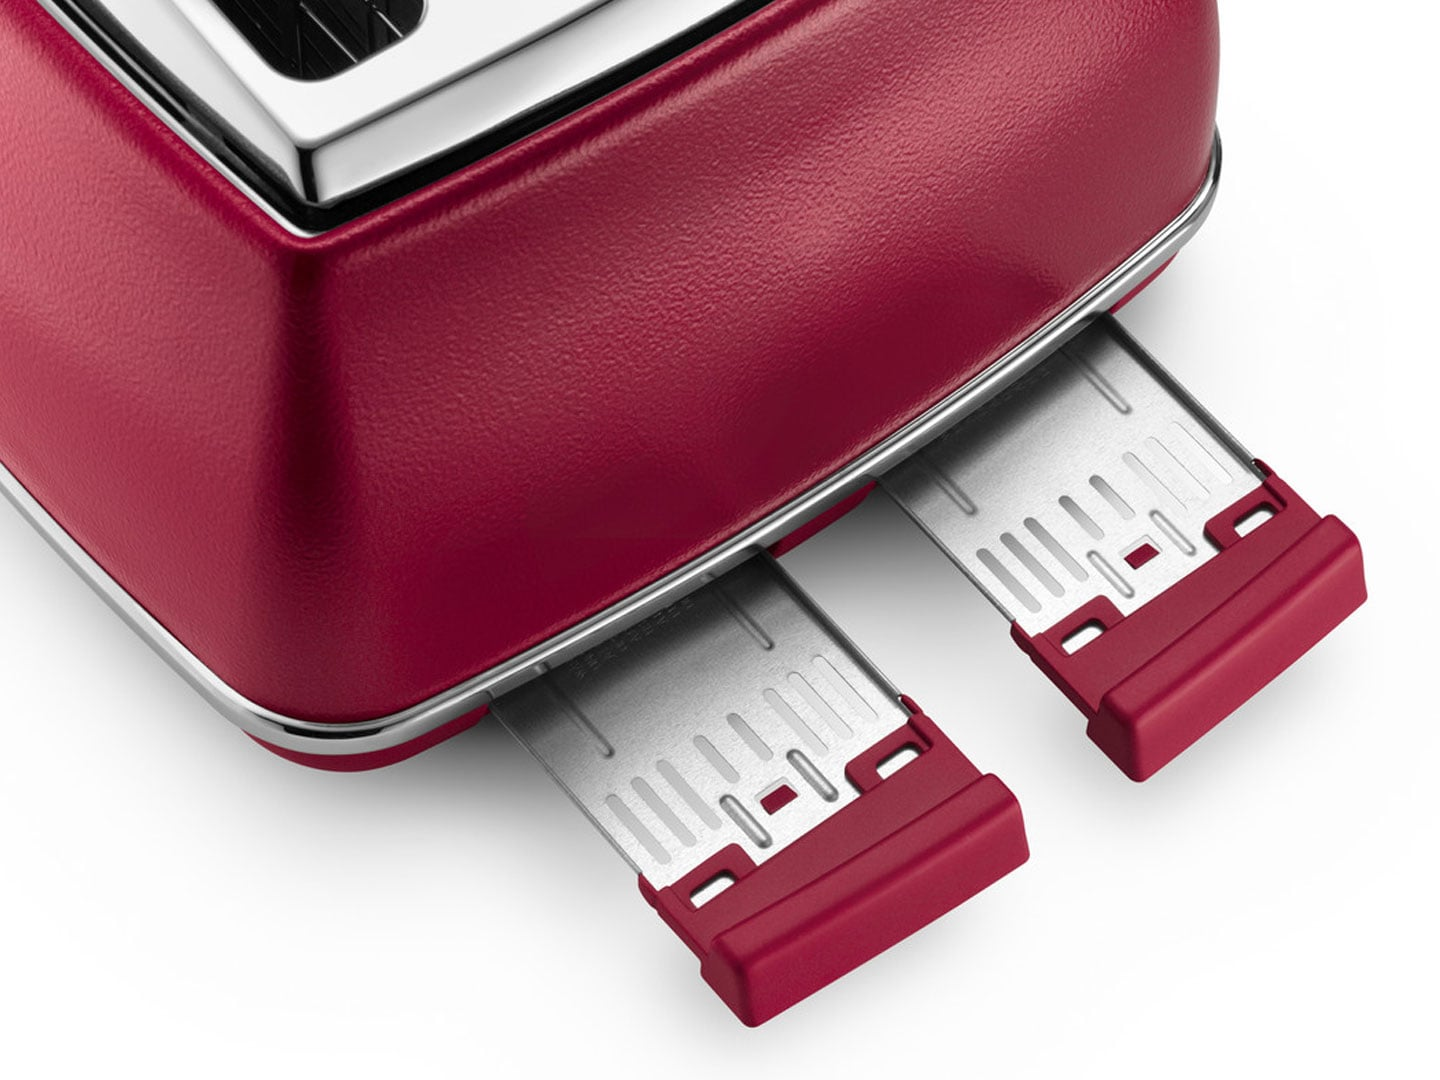 DeLonghi Icona Elements 4 Slice Toaster Flame Red CTOE4003R